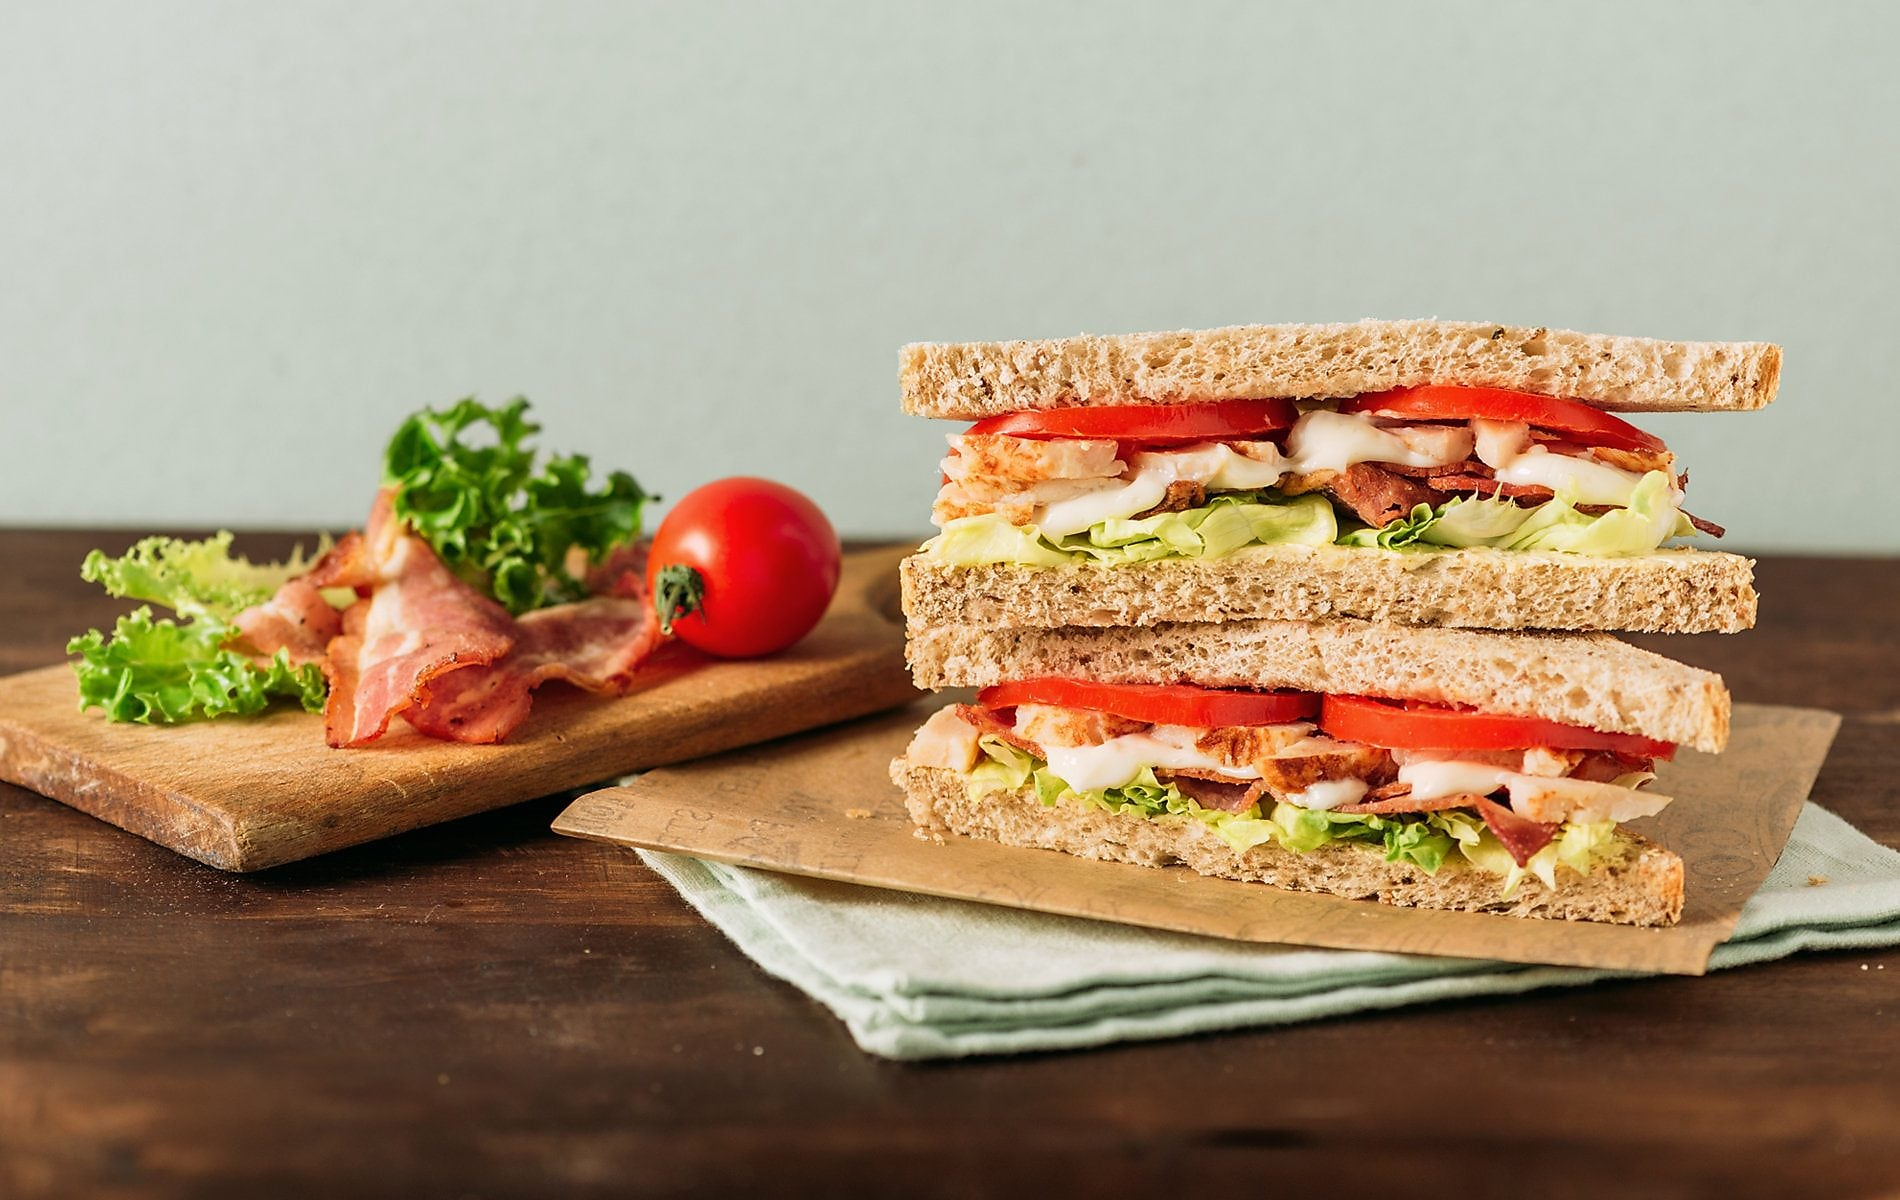 Club sandwich with tomato